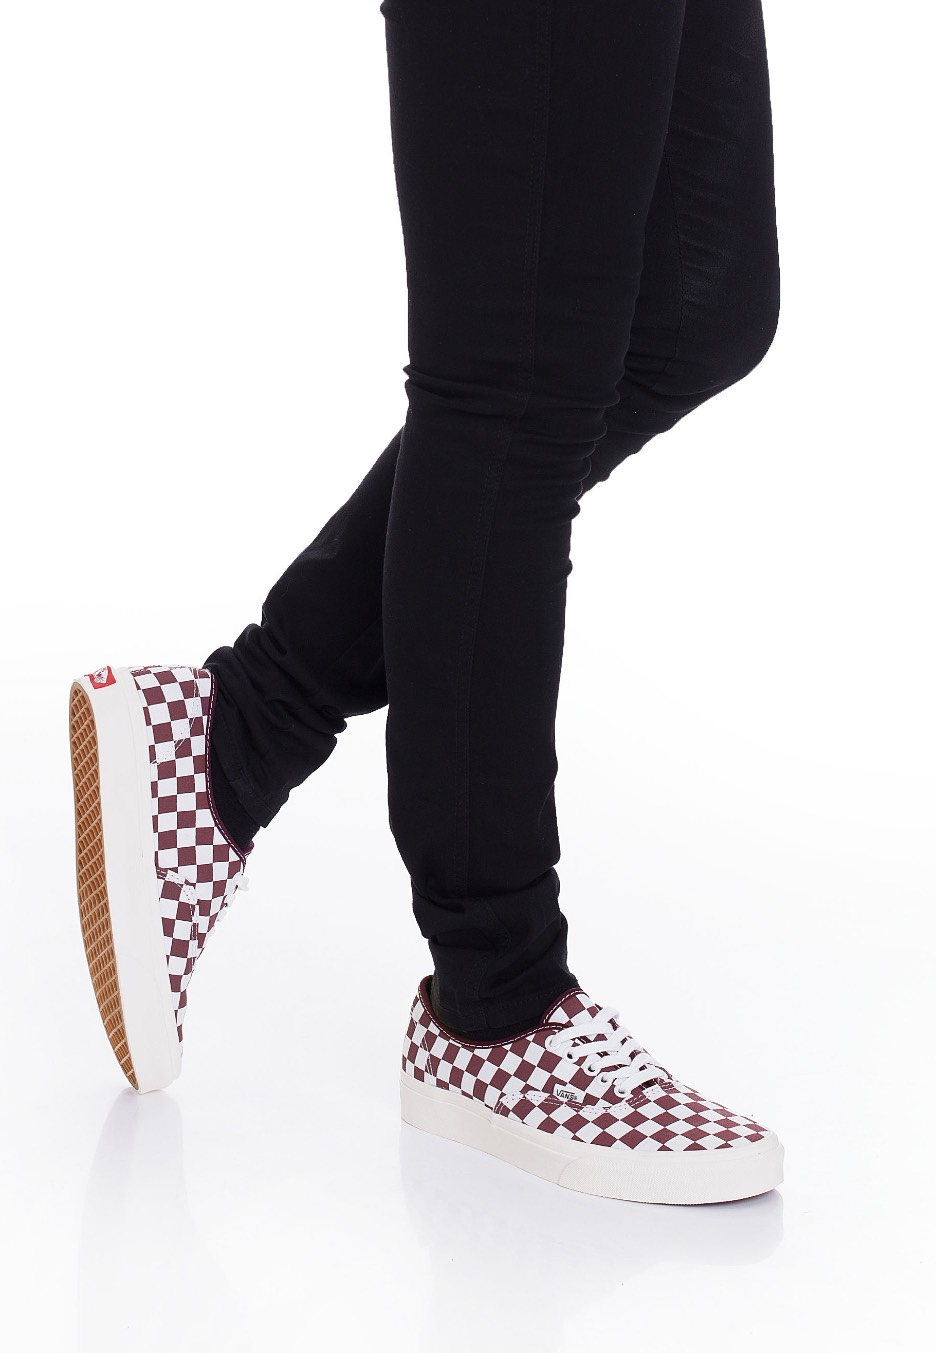 739faddb95b4 Vans - Authentic Checkerboard Port Royale Marshmallow - Shoes ...